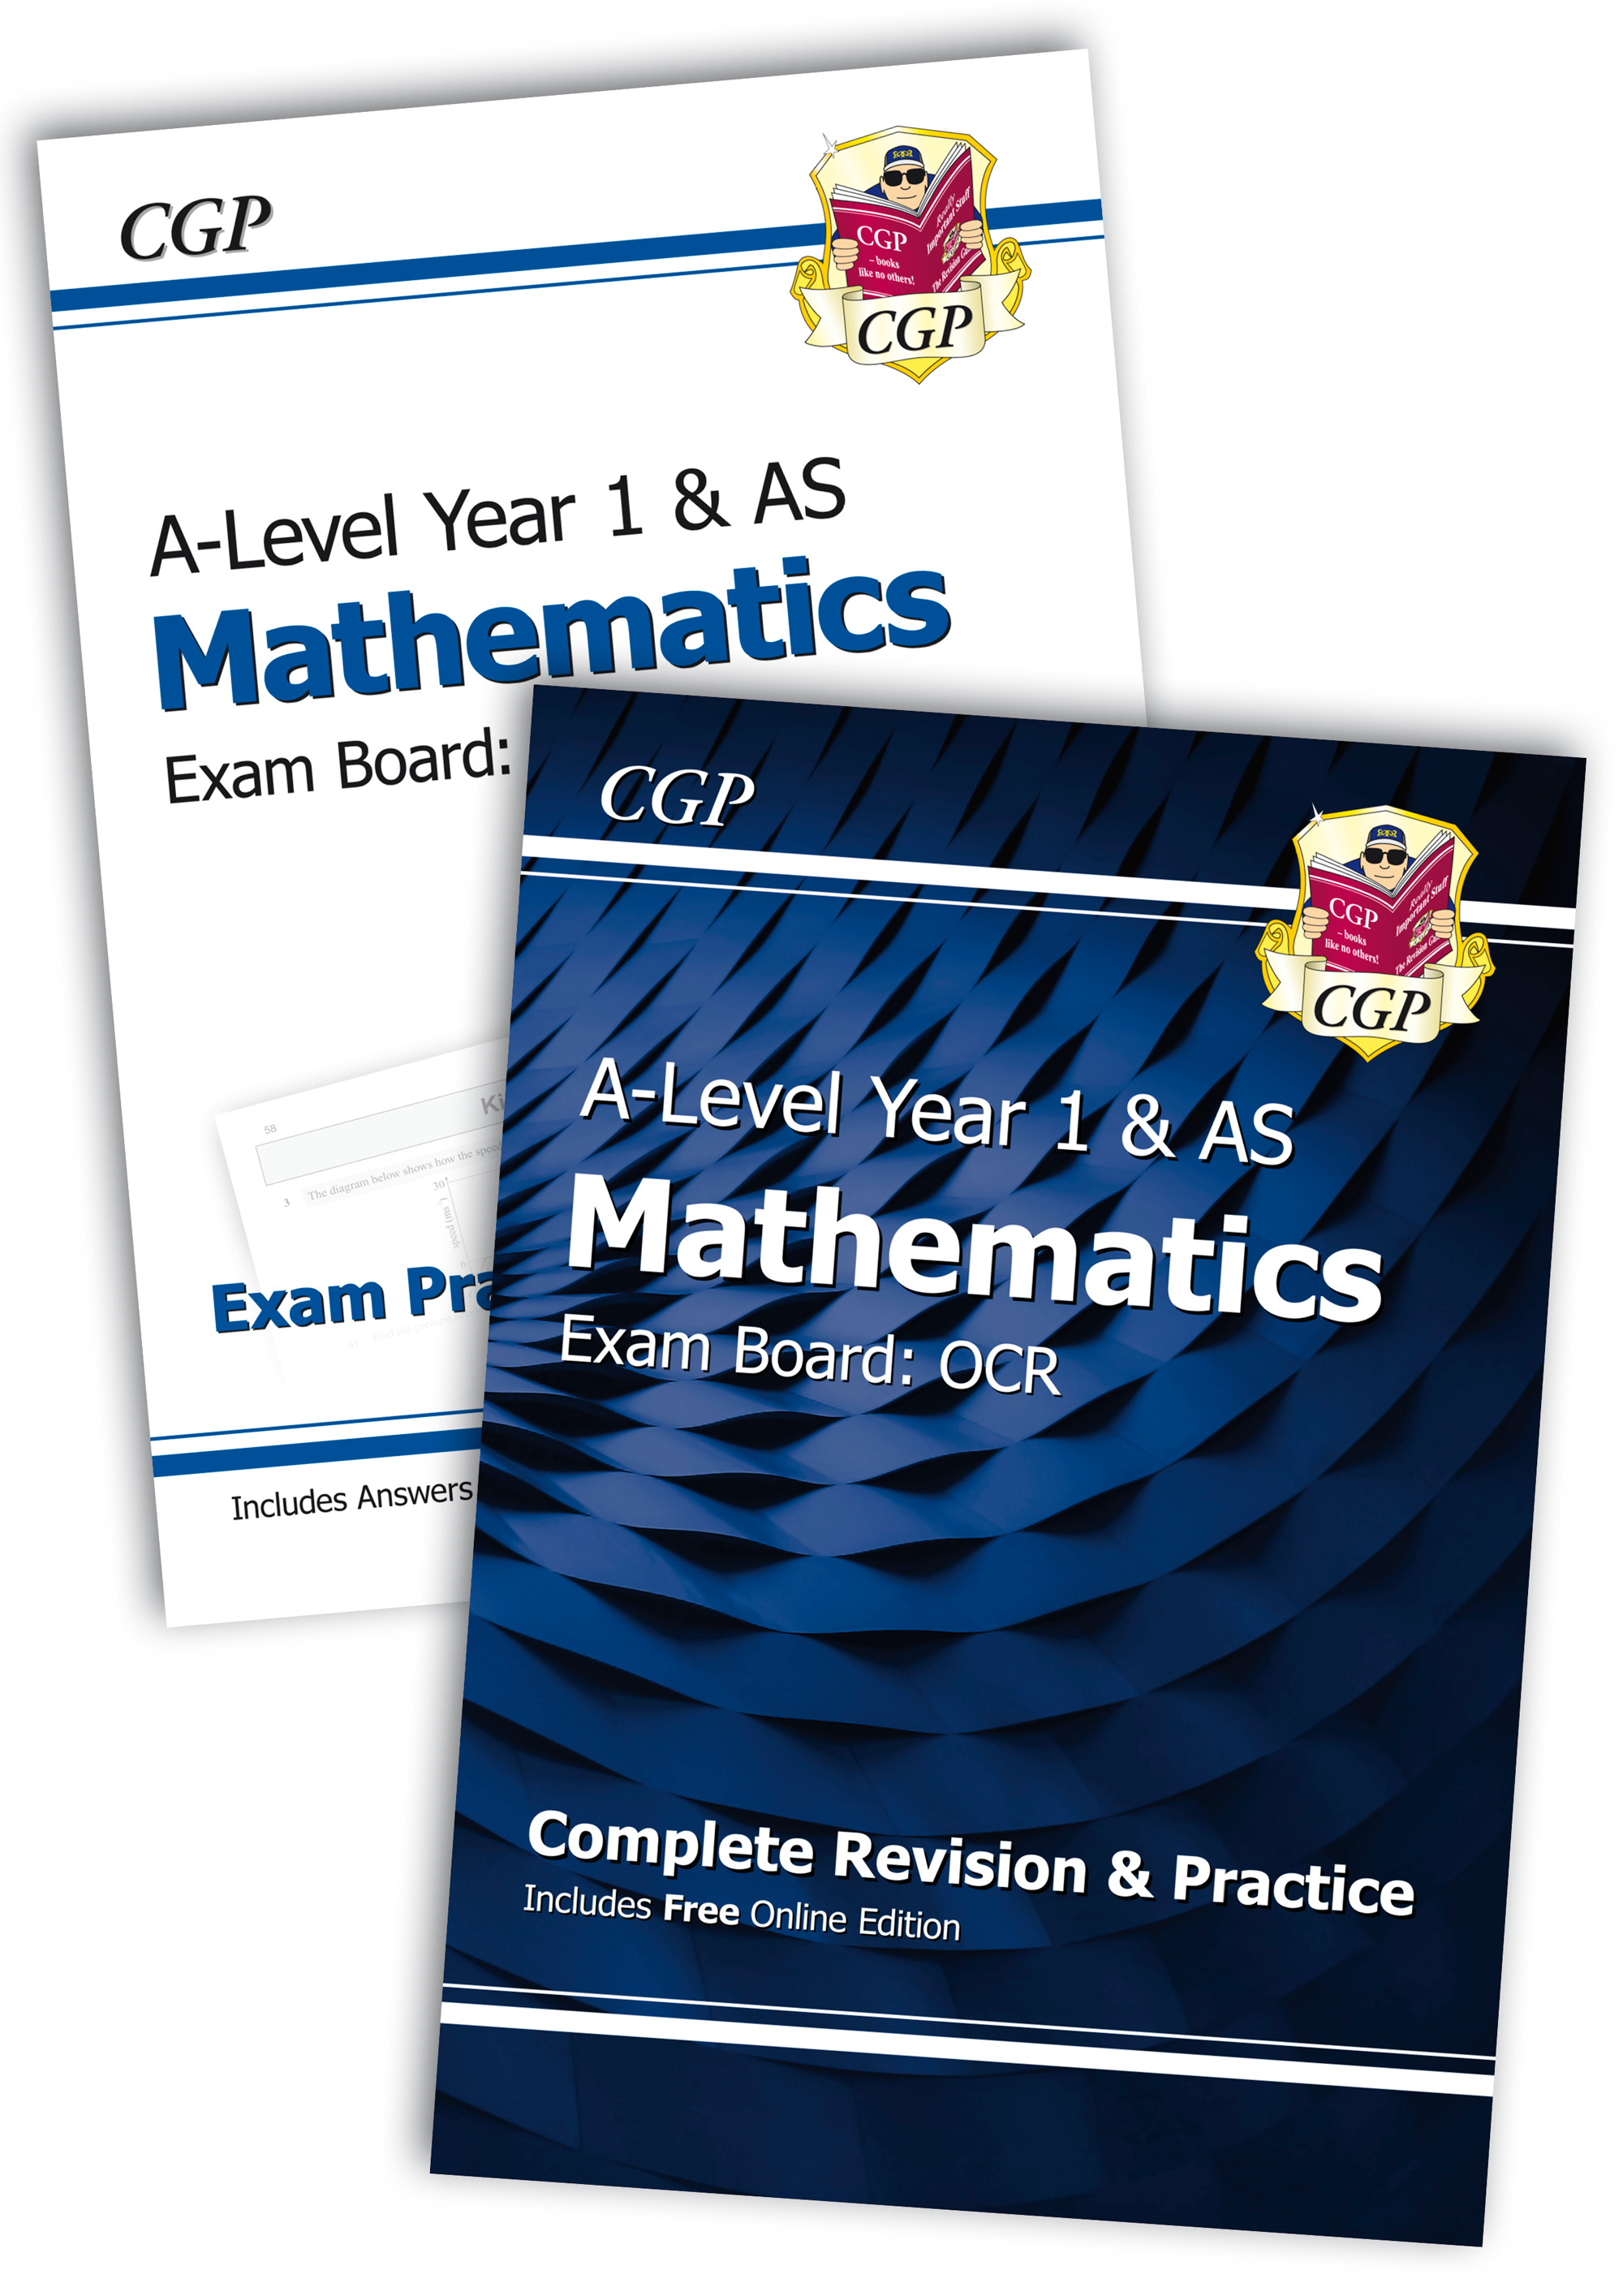 MRAB51 - Complete Revision and Exam Practice A-Level Maths Bundle: OCR Year 1 & AS